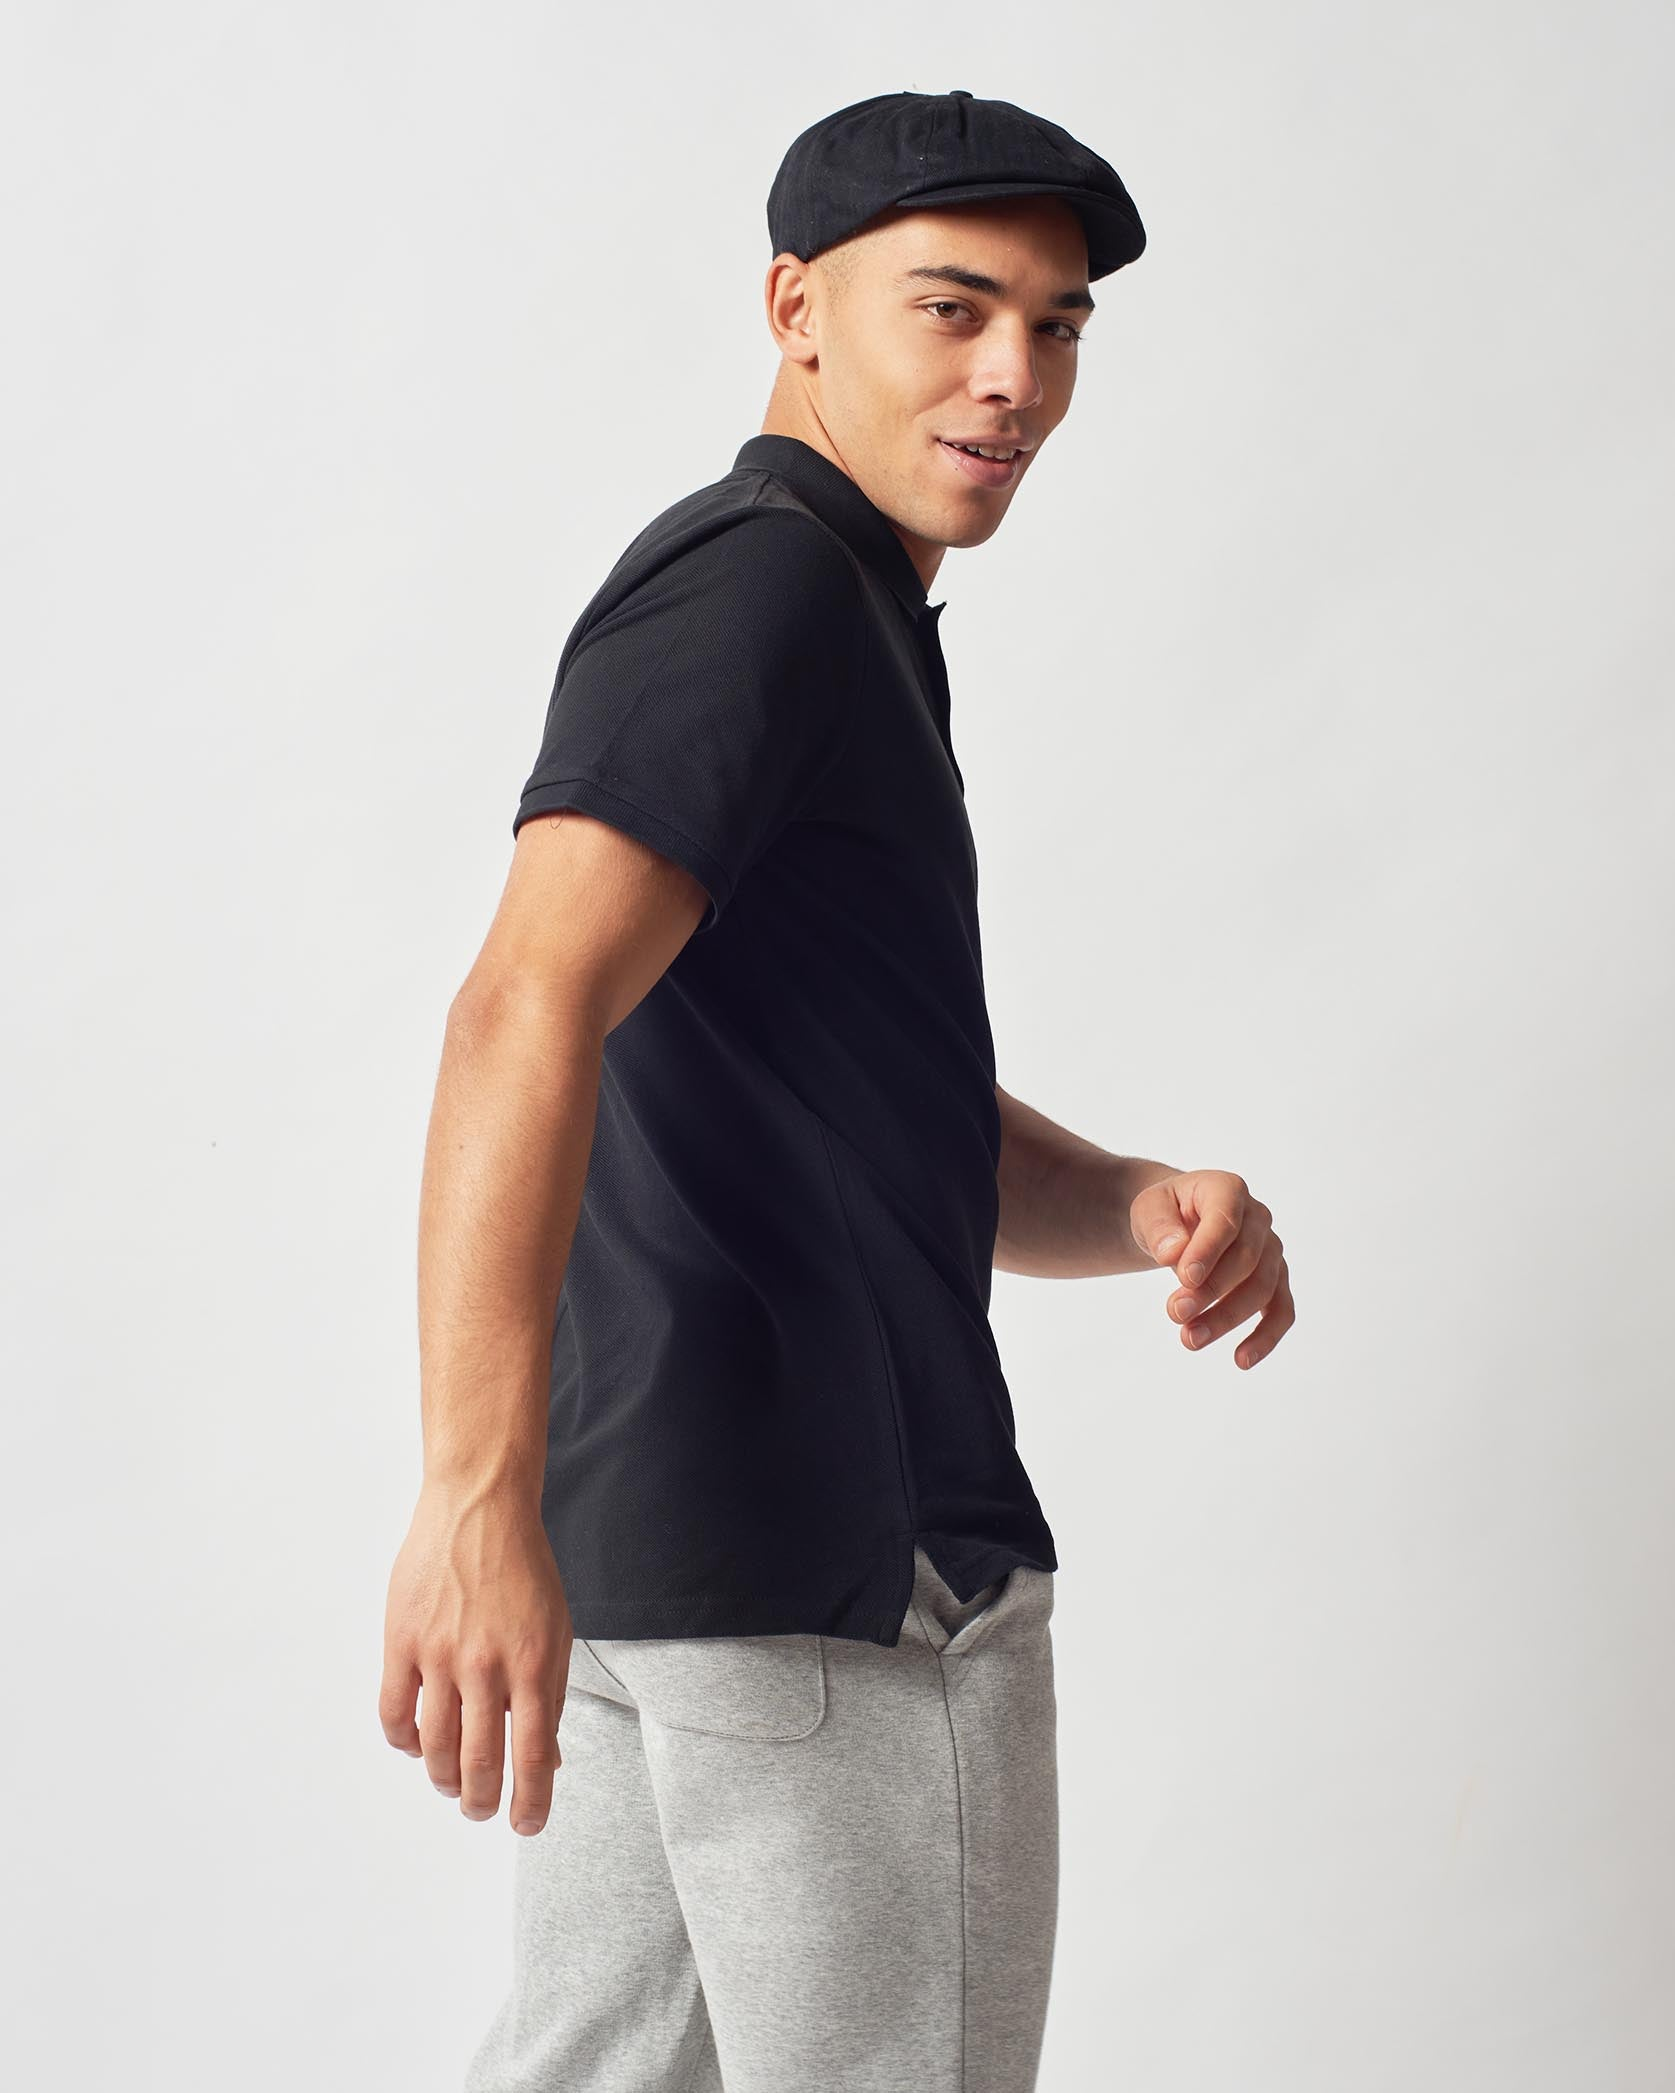 mens-black-boy-cap